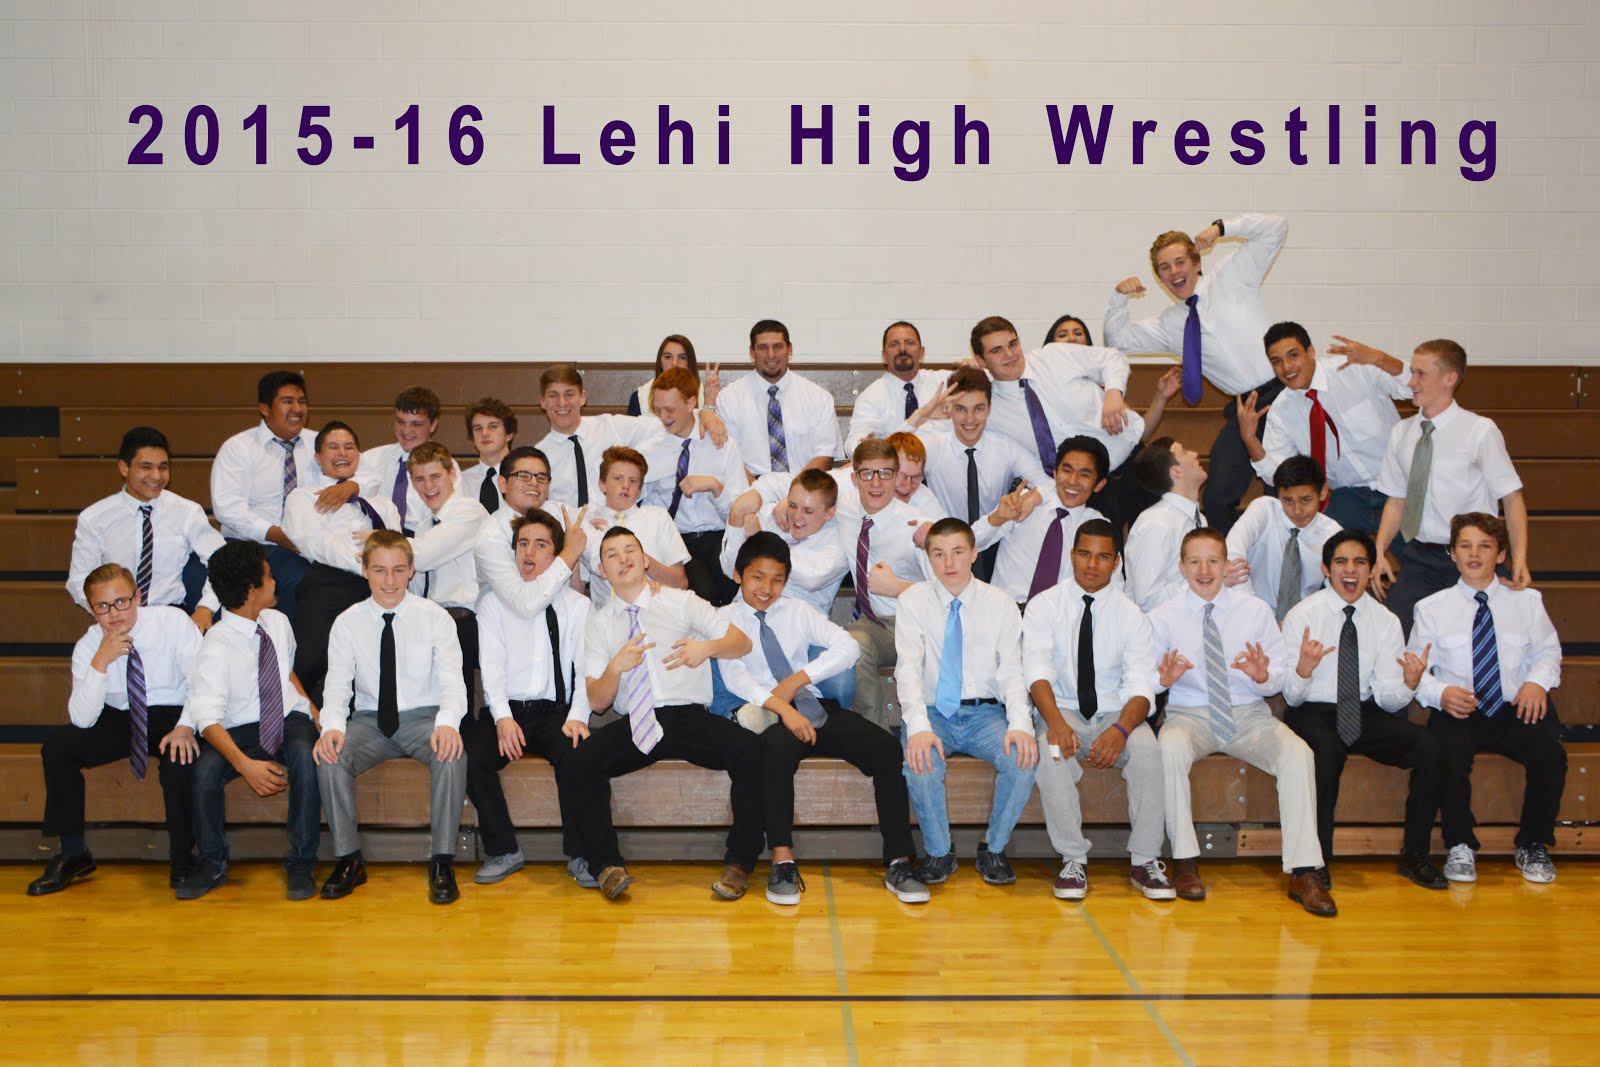 2015-16 Lehi High Wrestling